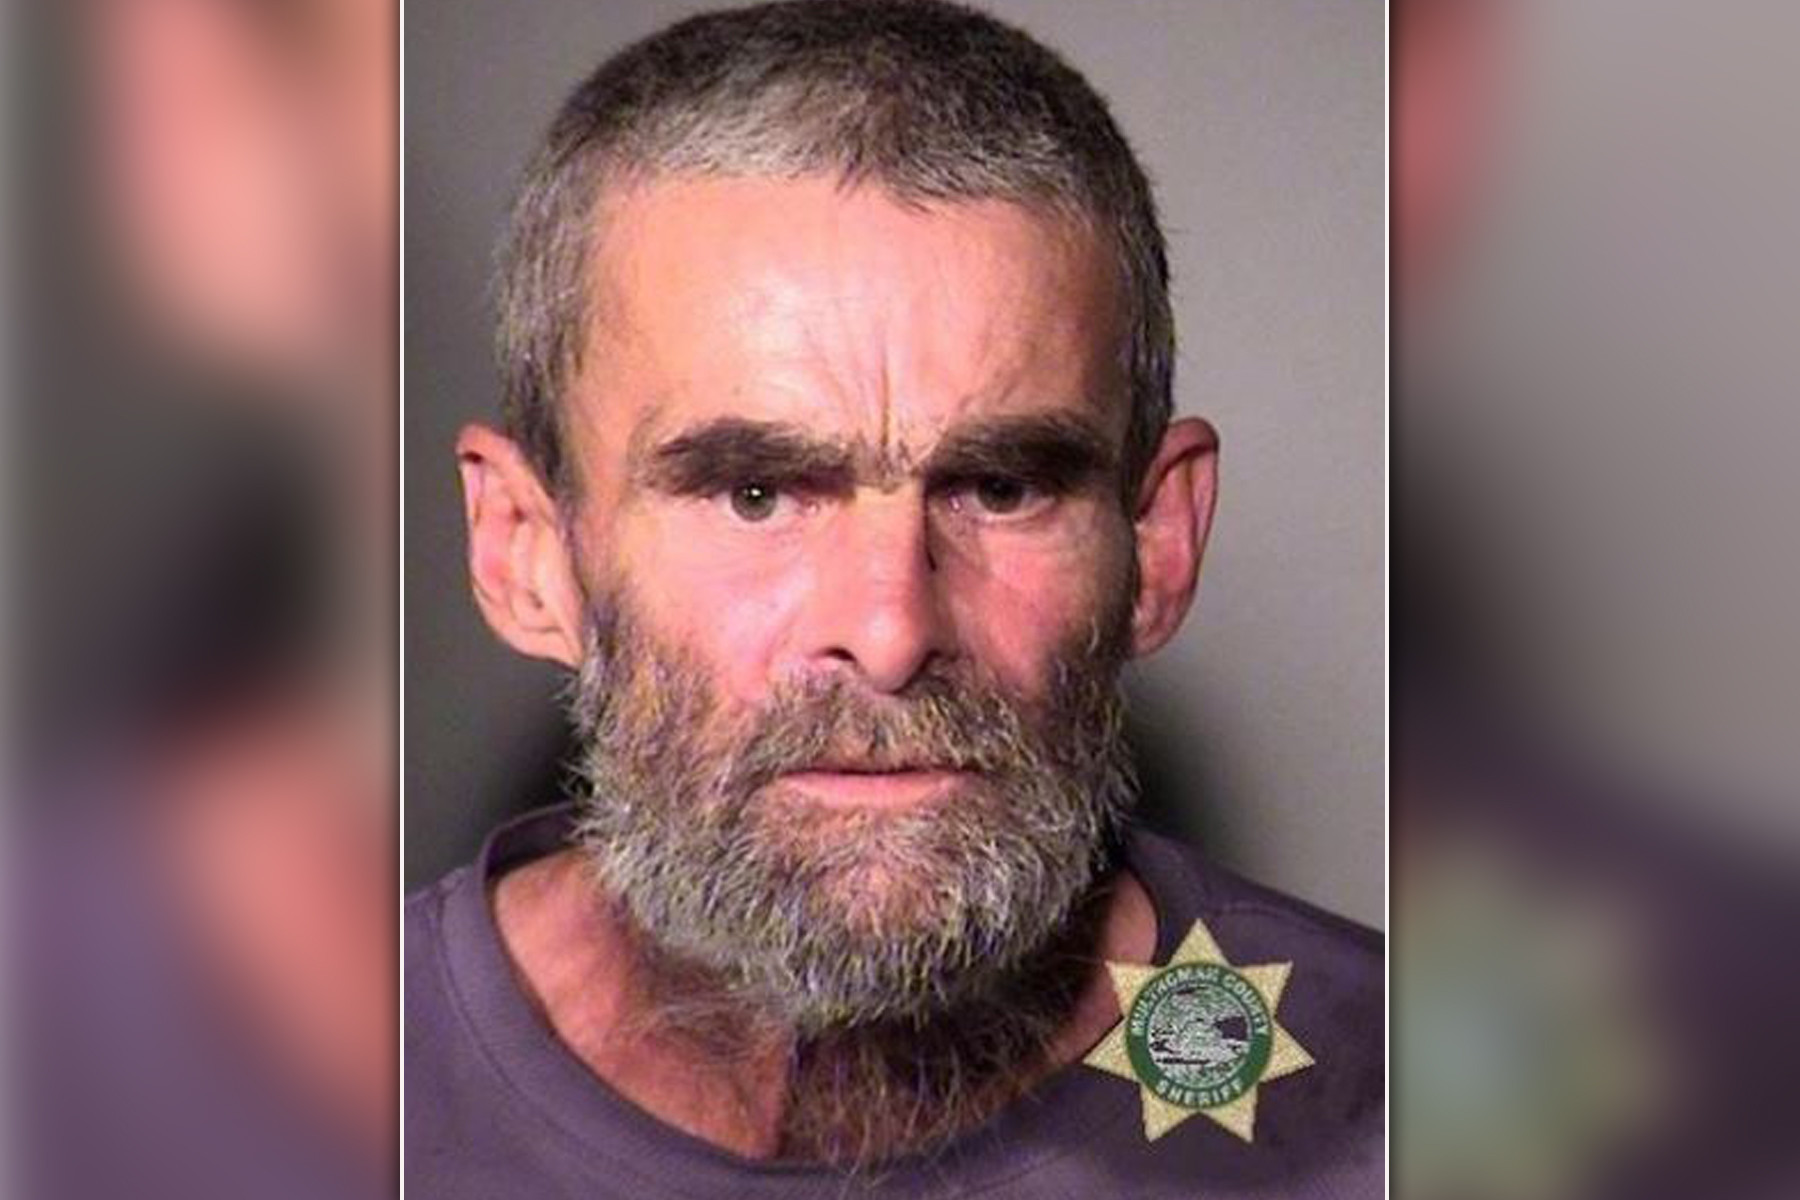 Oregon man becomes first person charged under state's bias crime law, after attacking 3 Latino men walking out of gay club